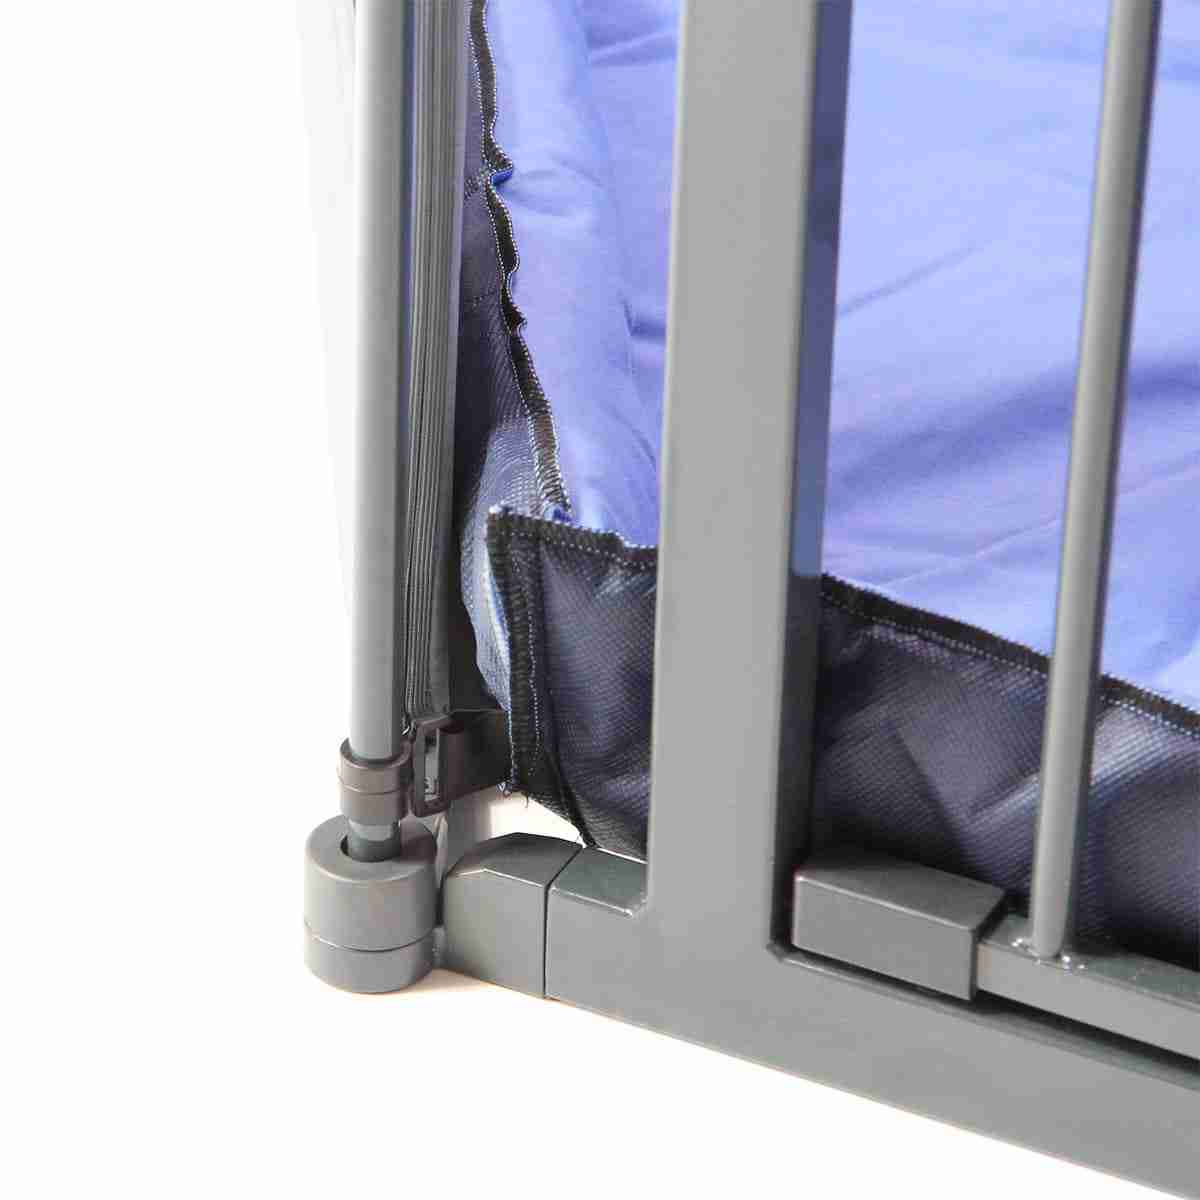 The fitted mat can be securely fitted in place